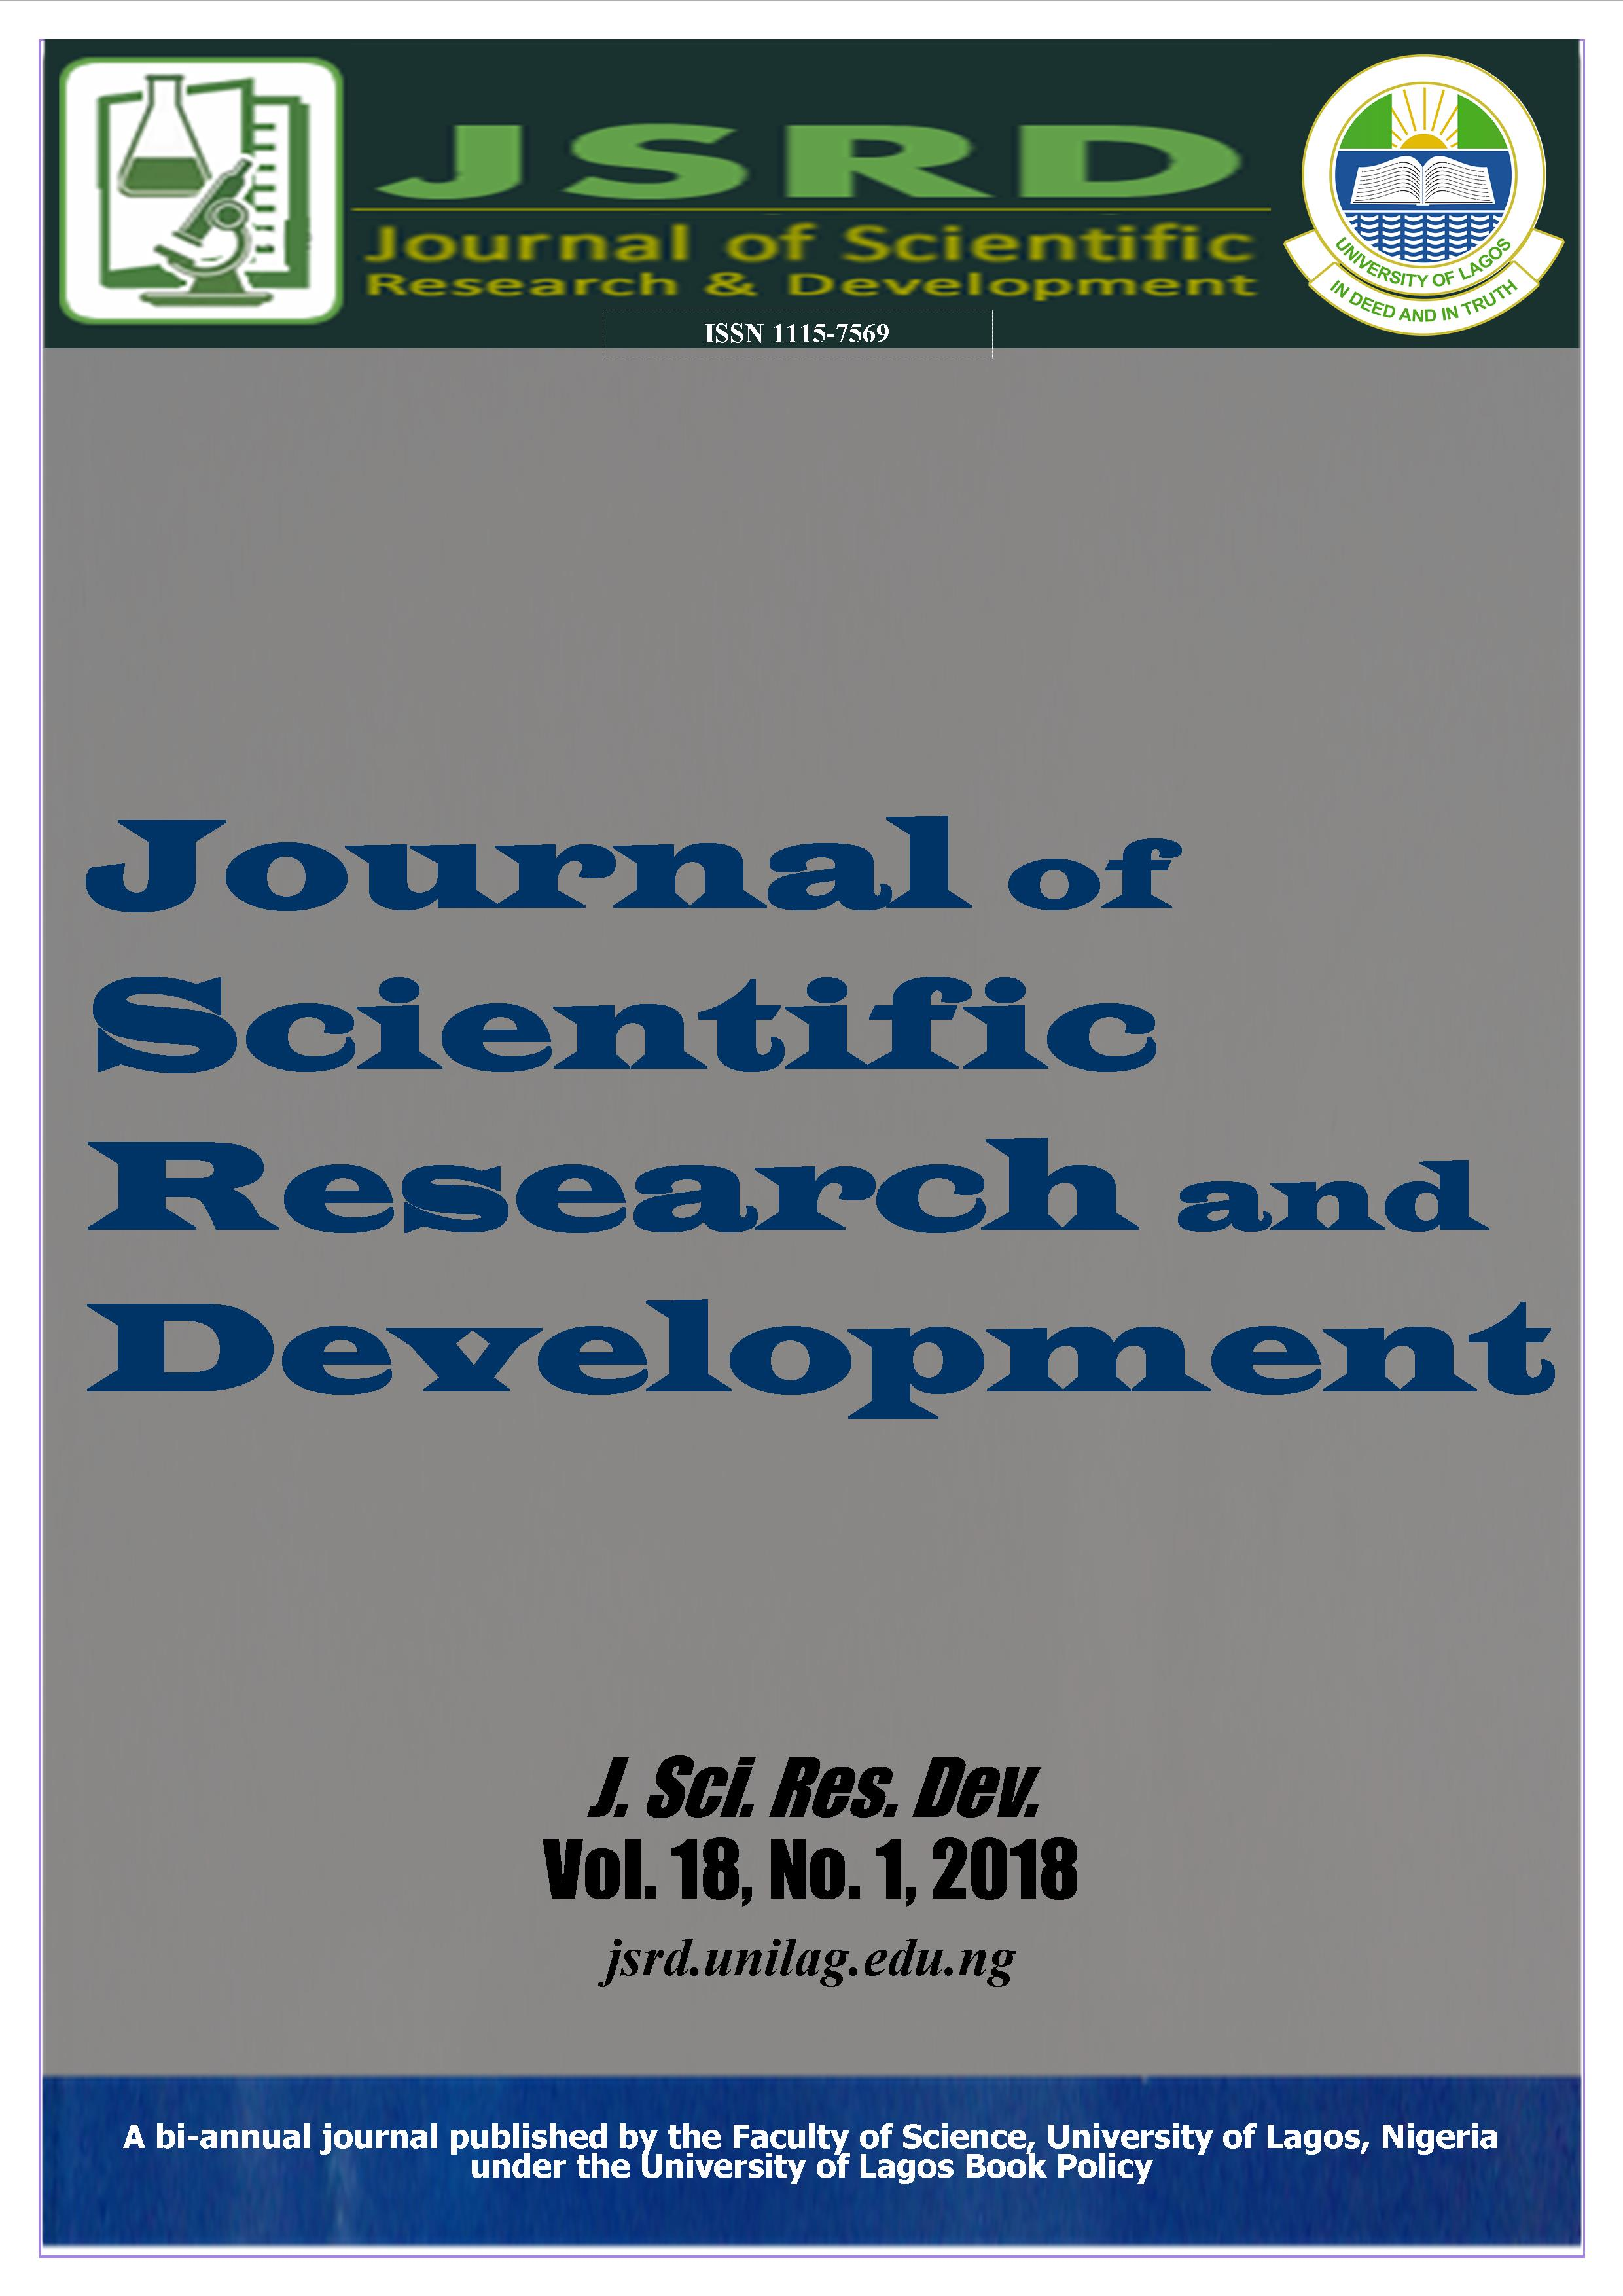 J. Sci. Res. Dev. Vol. 18, No. 1 (2018)